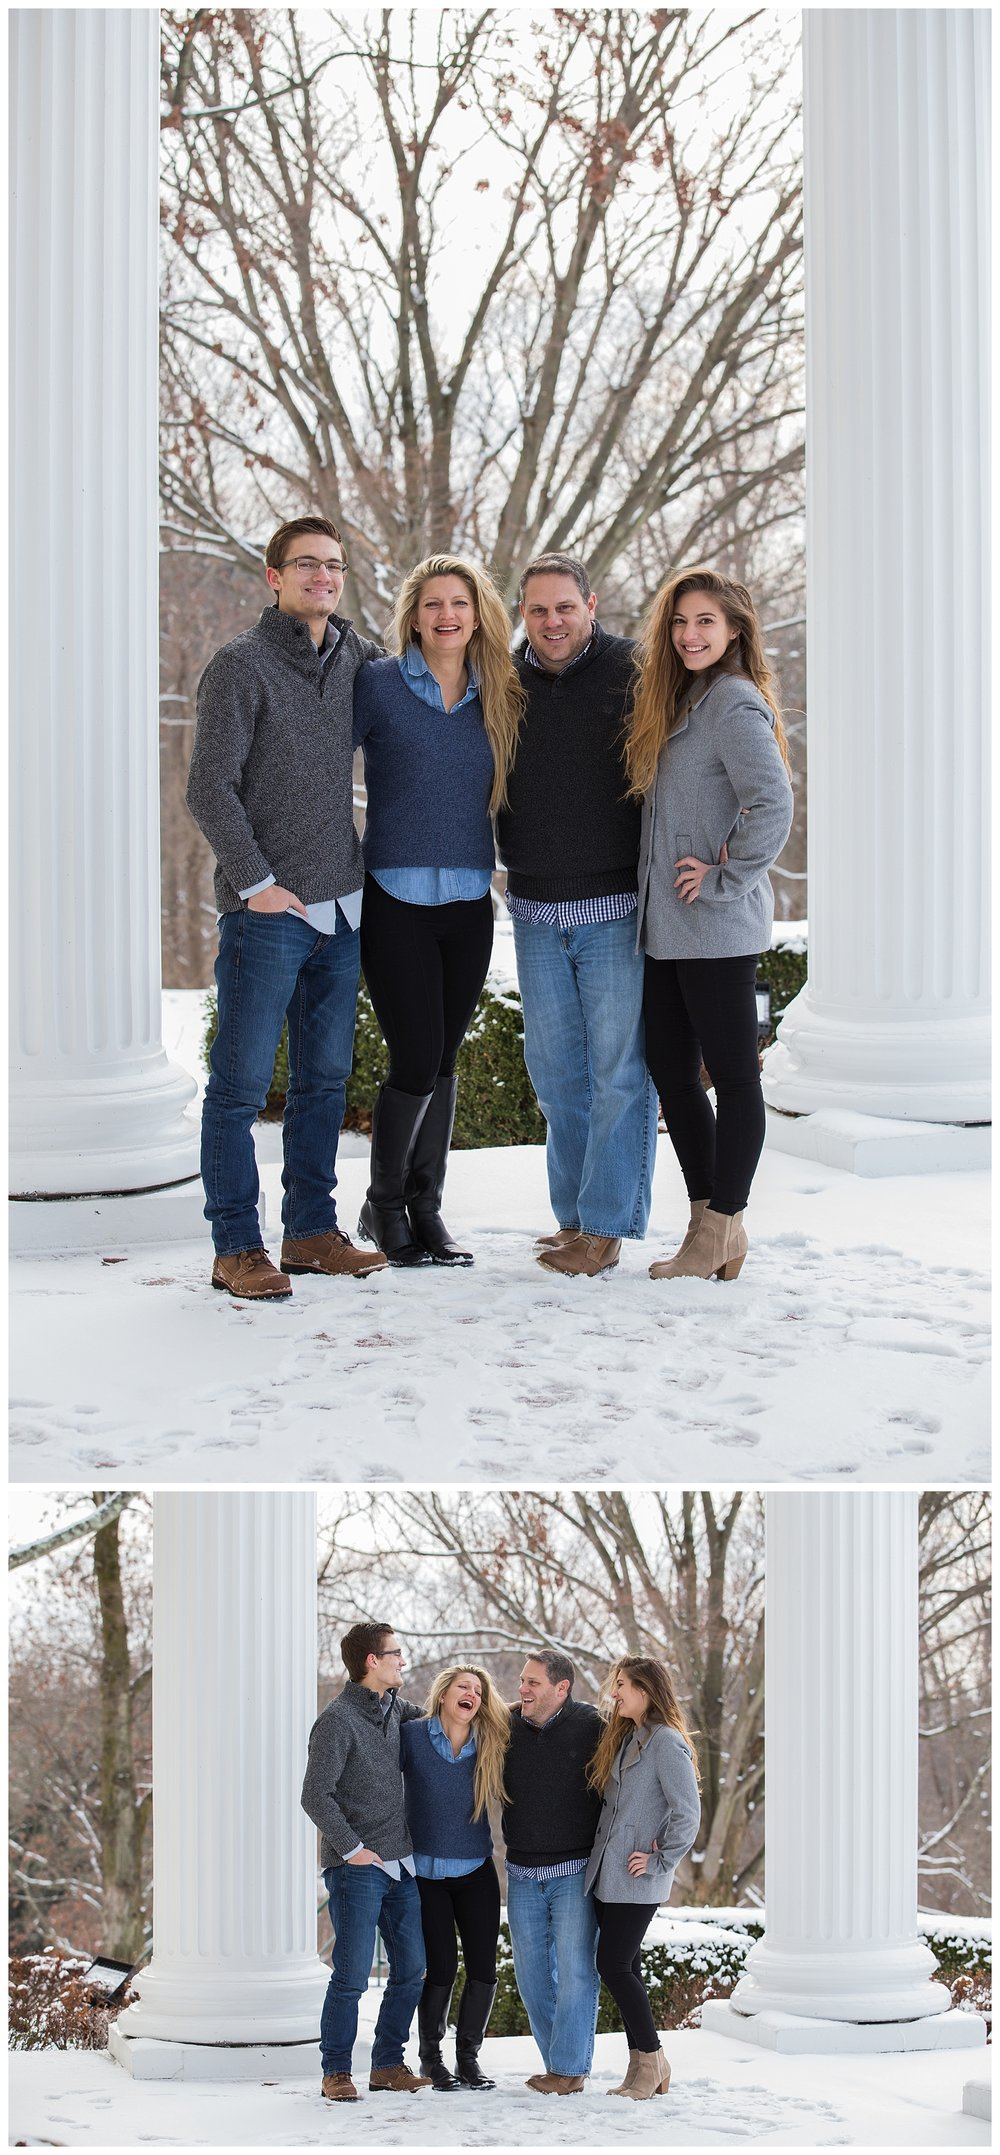 Wheeling, WV Winter Family Photos